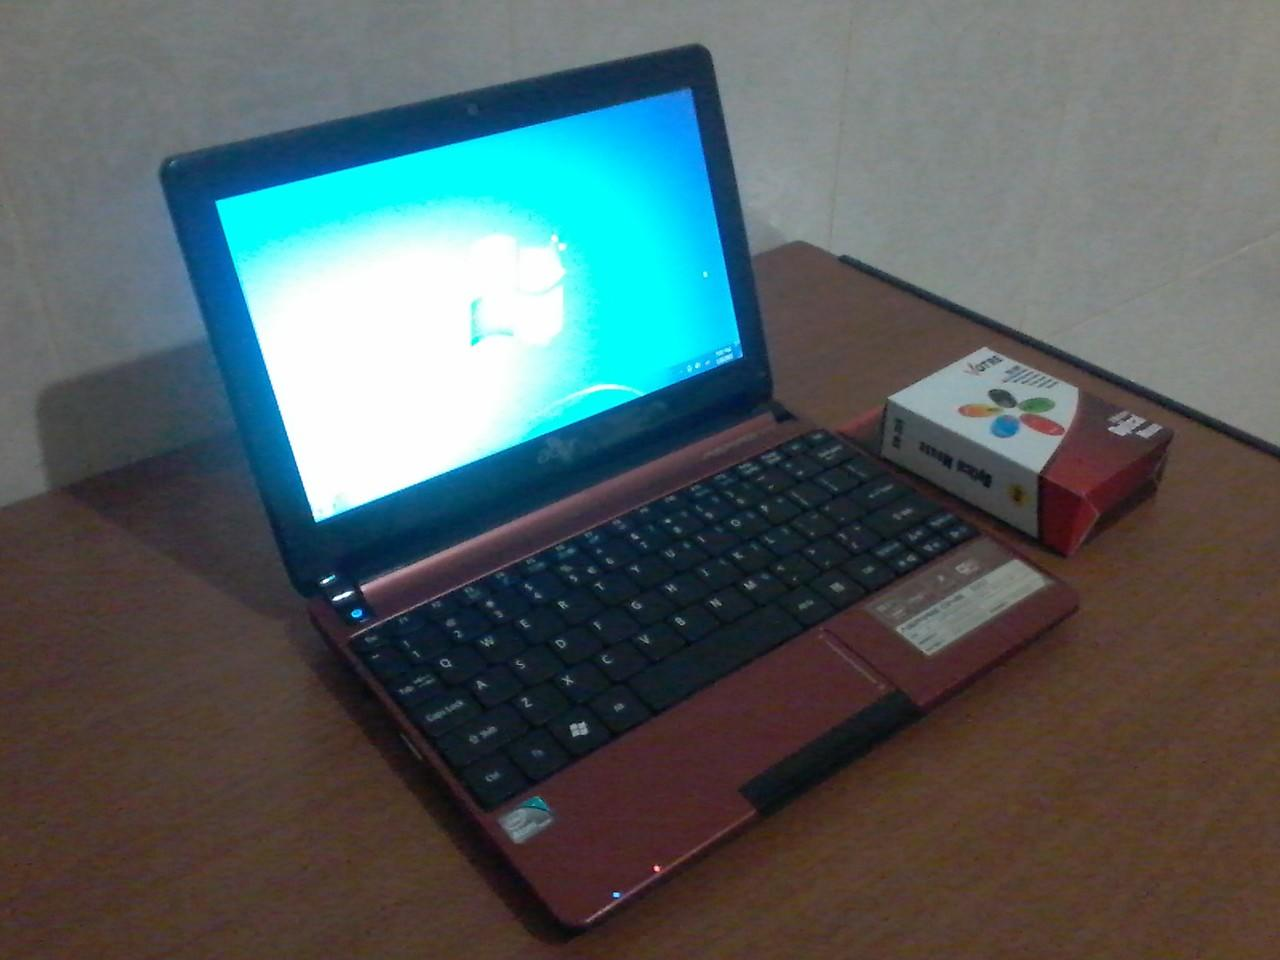 NETBOOK ACER ASPIRE ONE D257 TRENDY